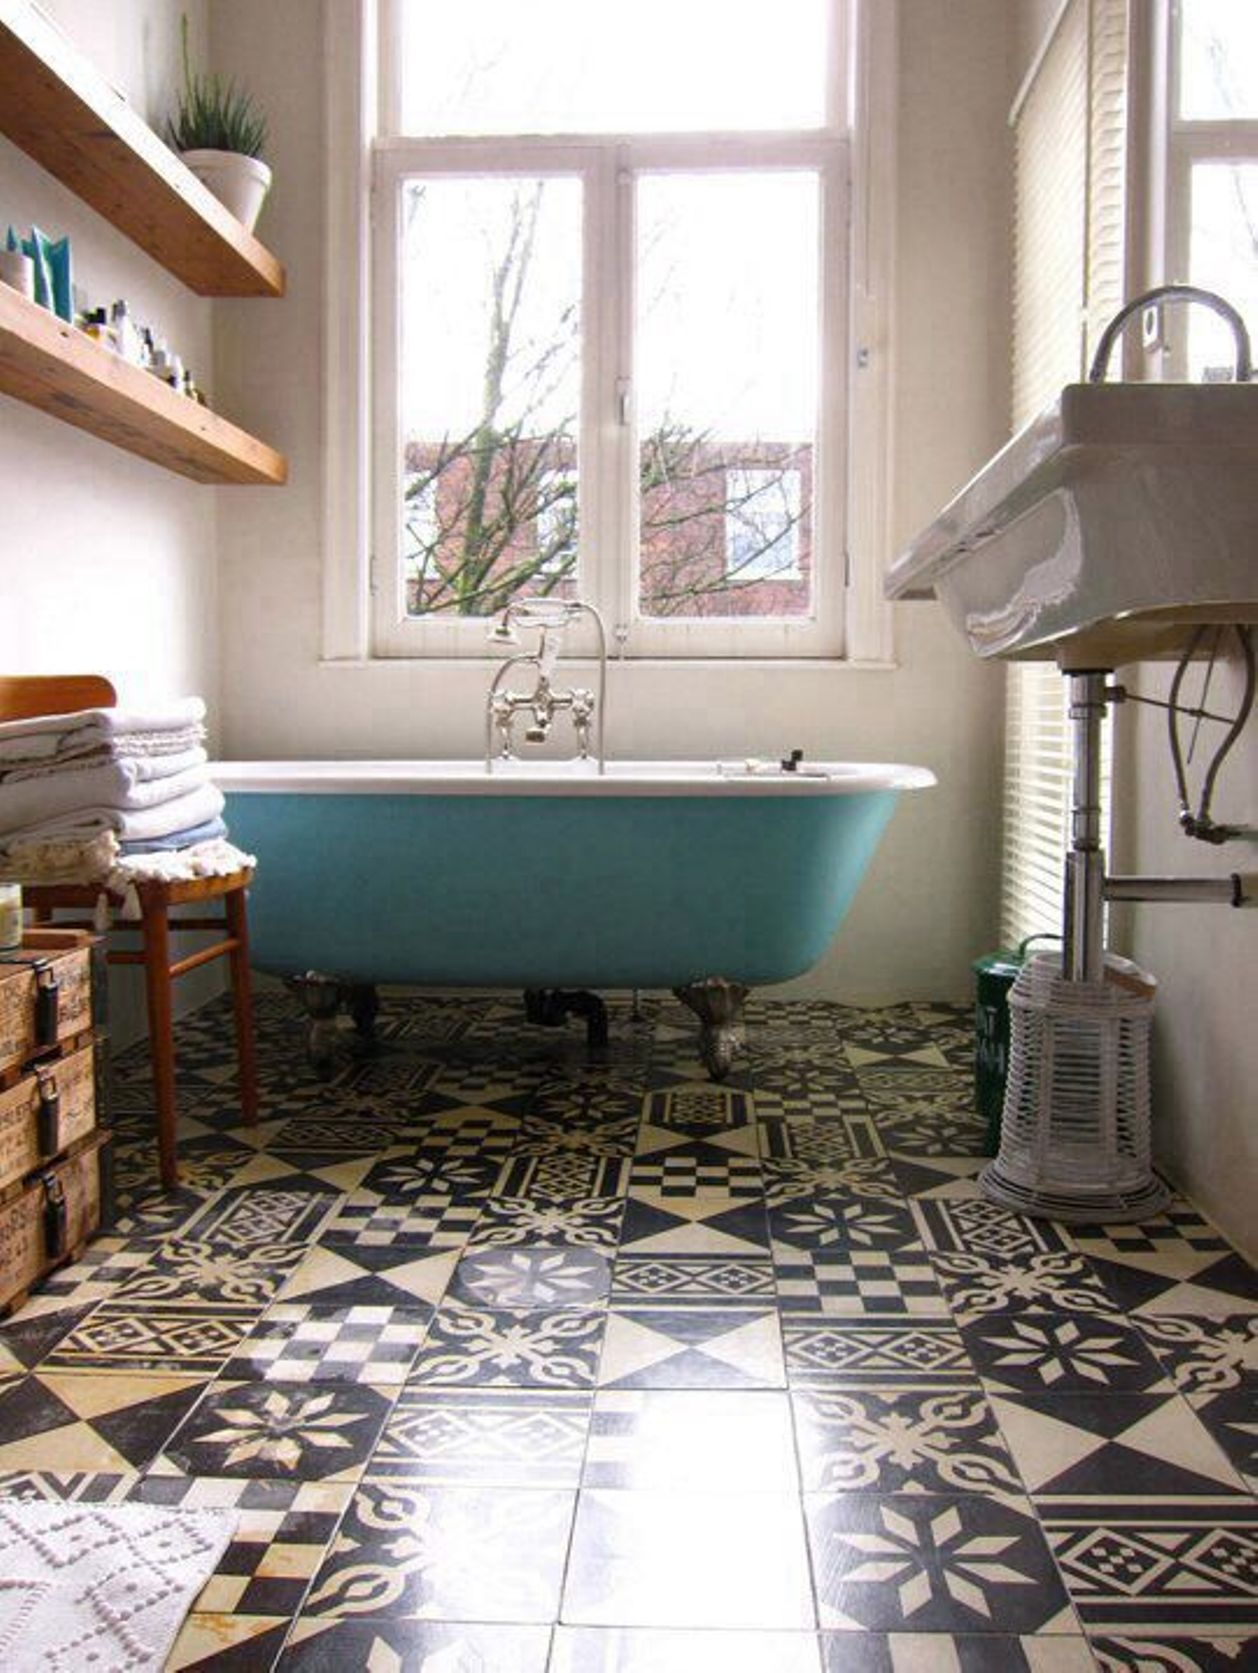 Antique Bathroom Tiles